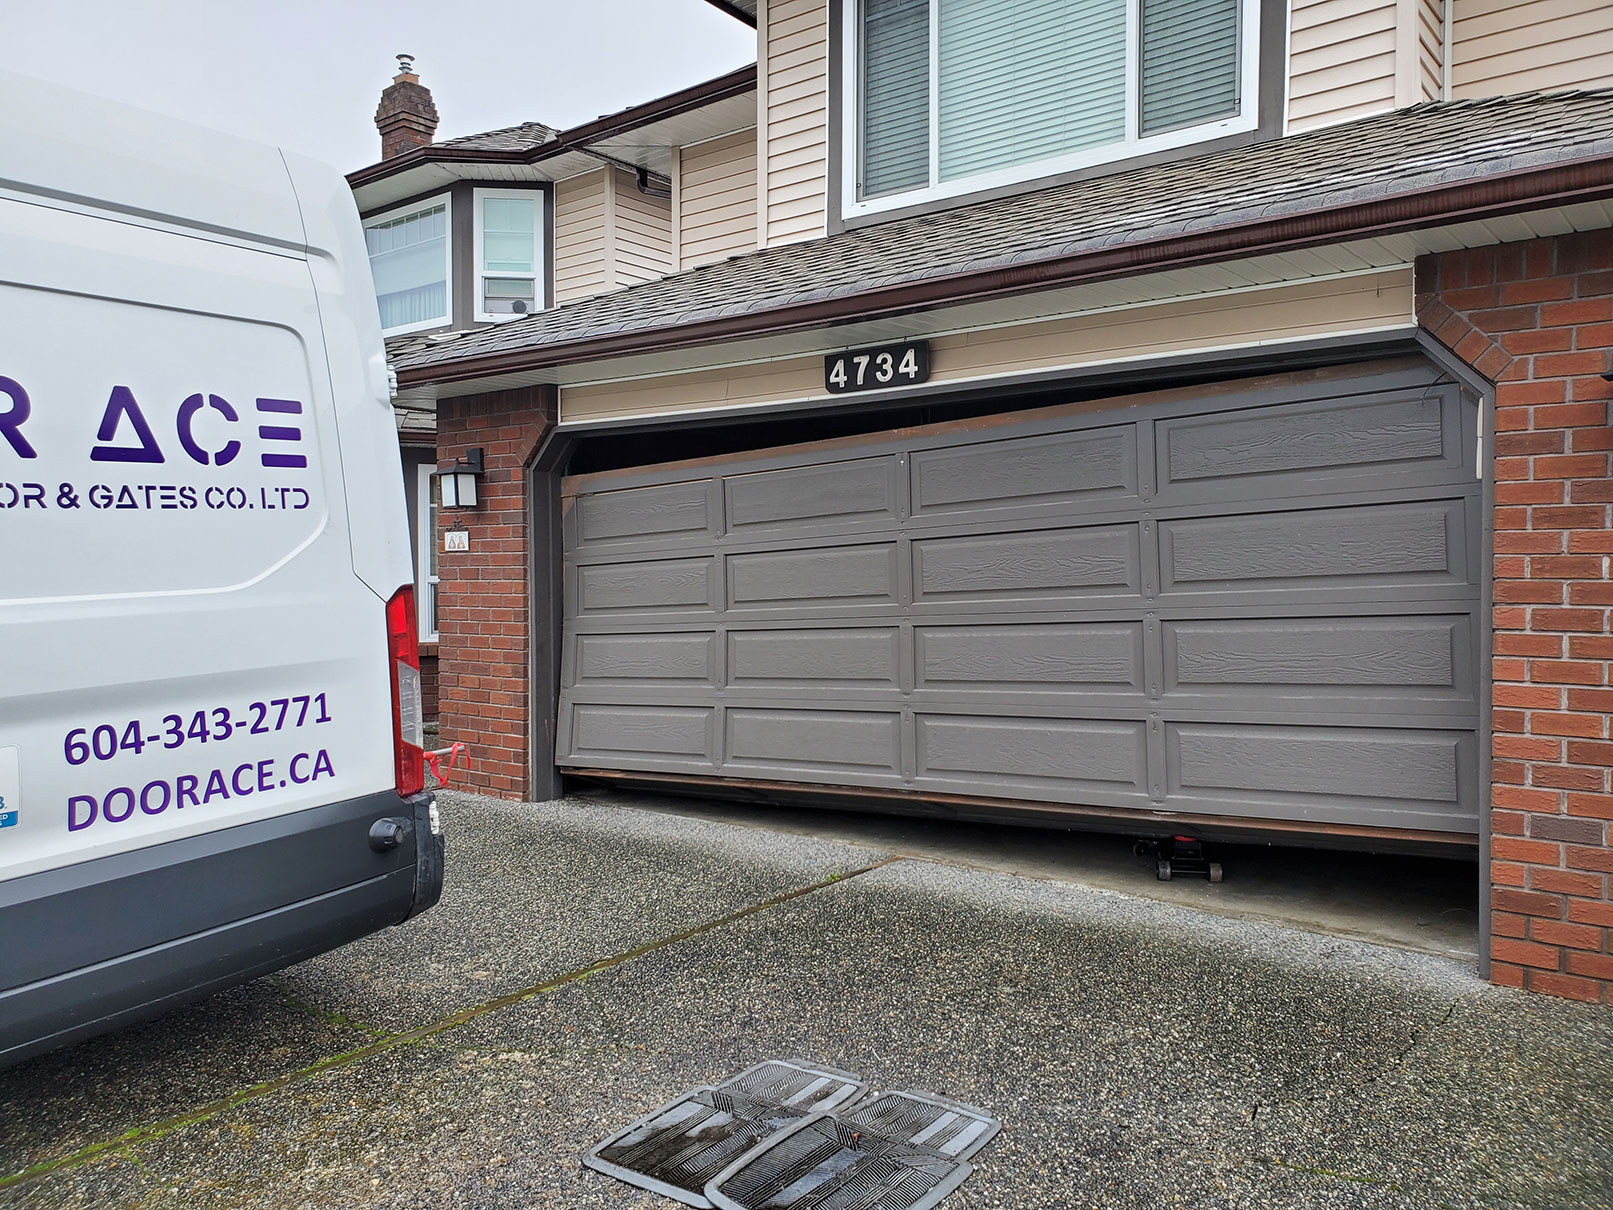 1. Doorace Residential Garage Door Repair Before